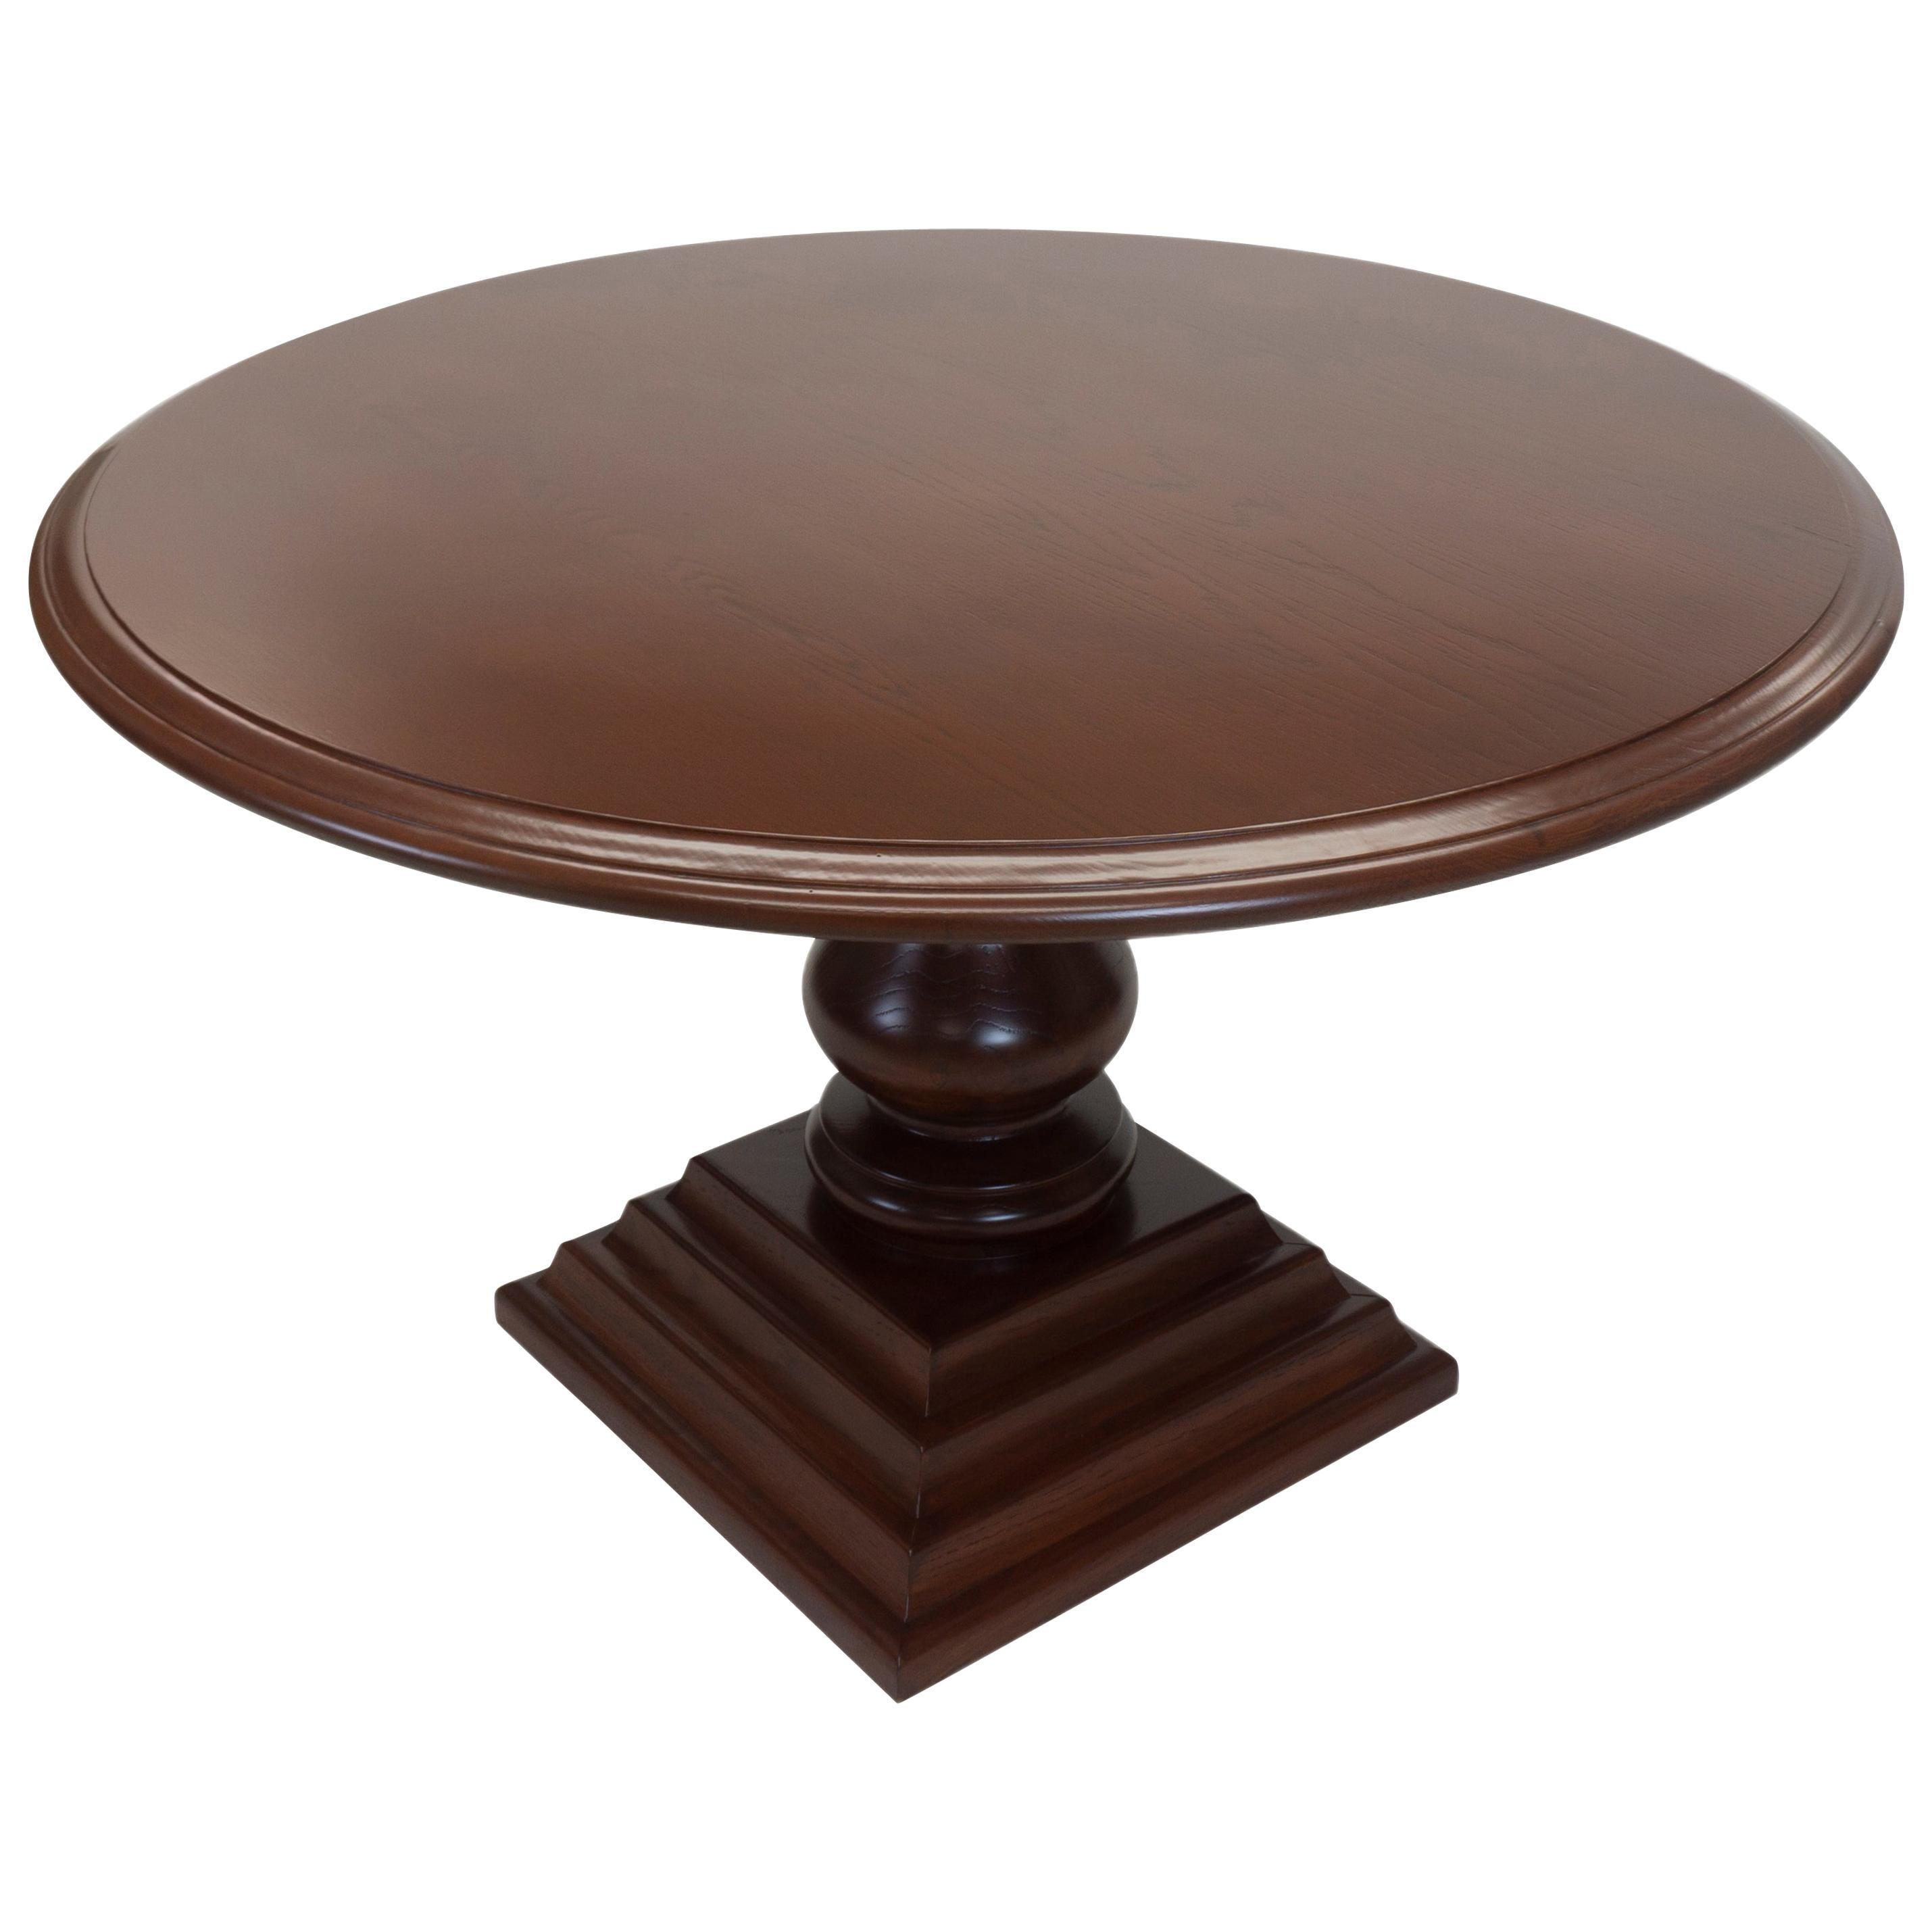 Traditional Round Pedestal Dining Table